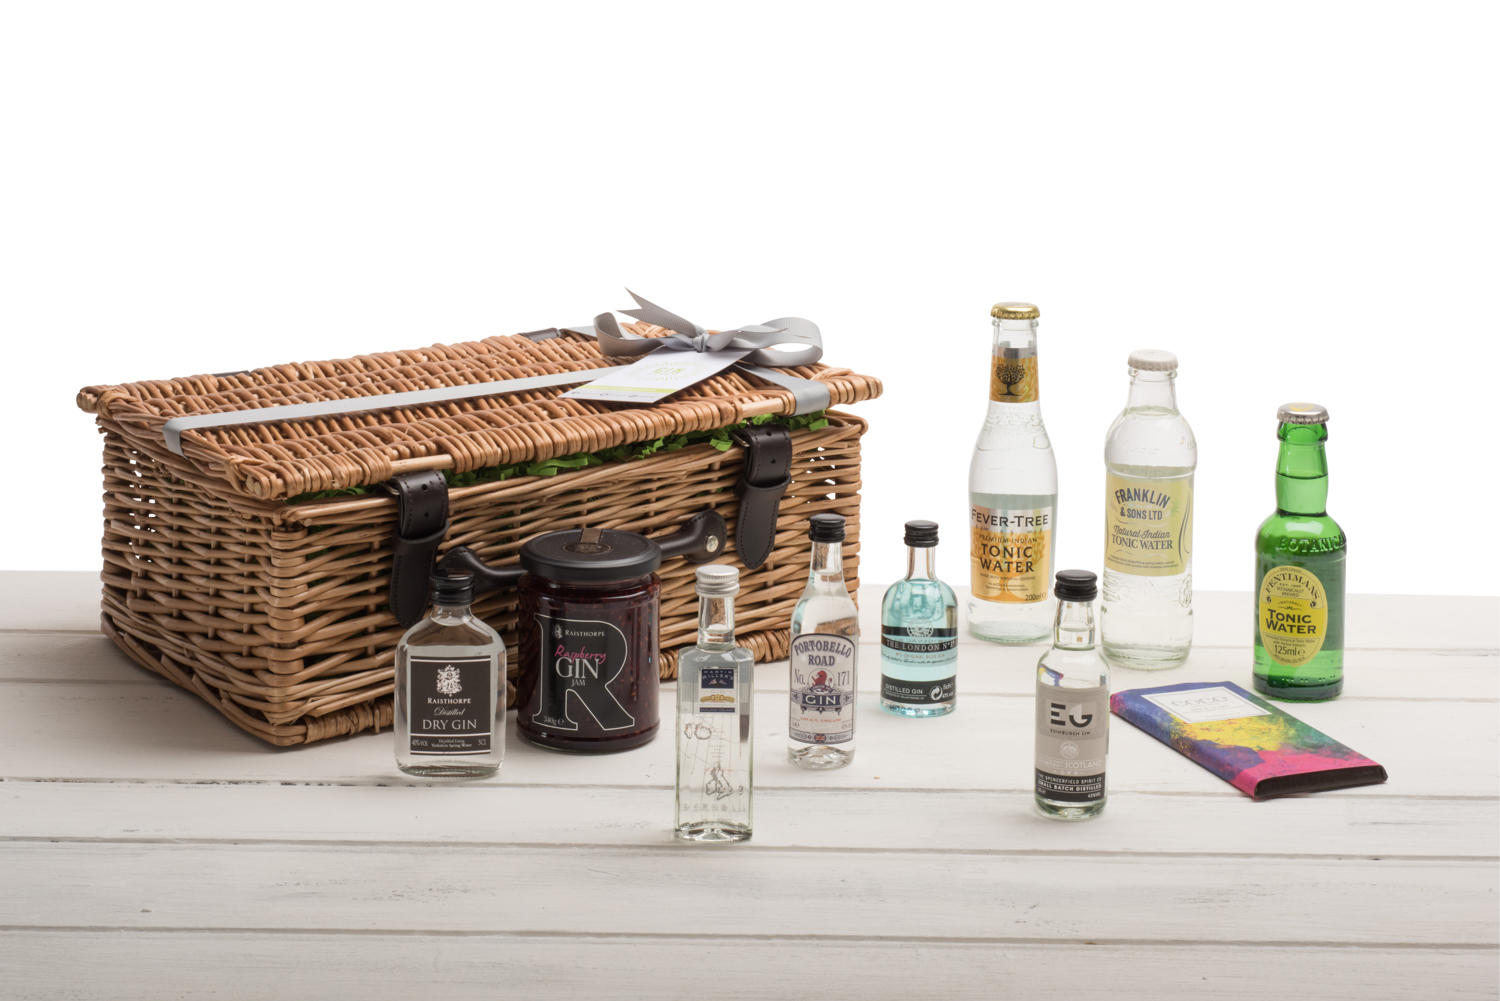 The Gin Miniatures Hamper - Chocolate & Jam - Wicker Basket